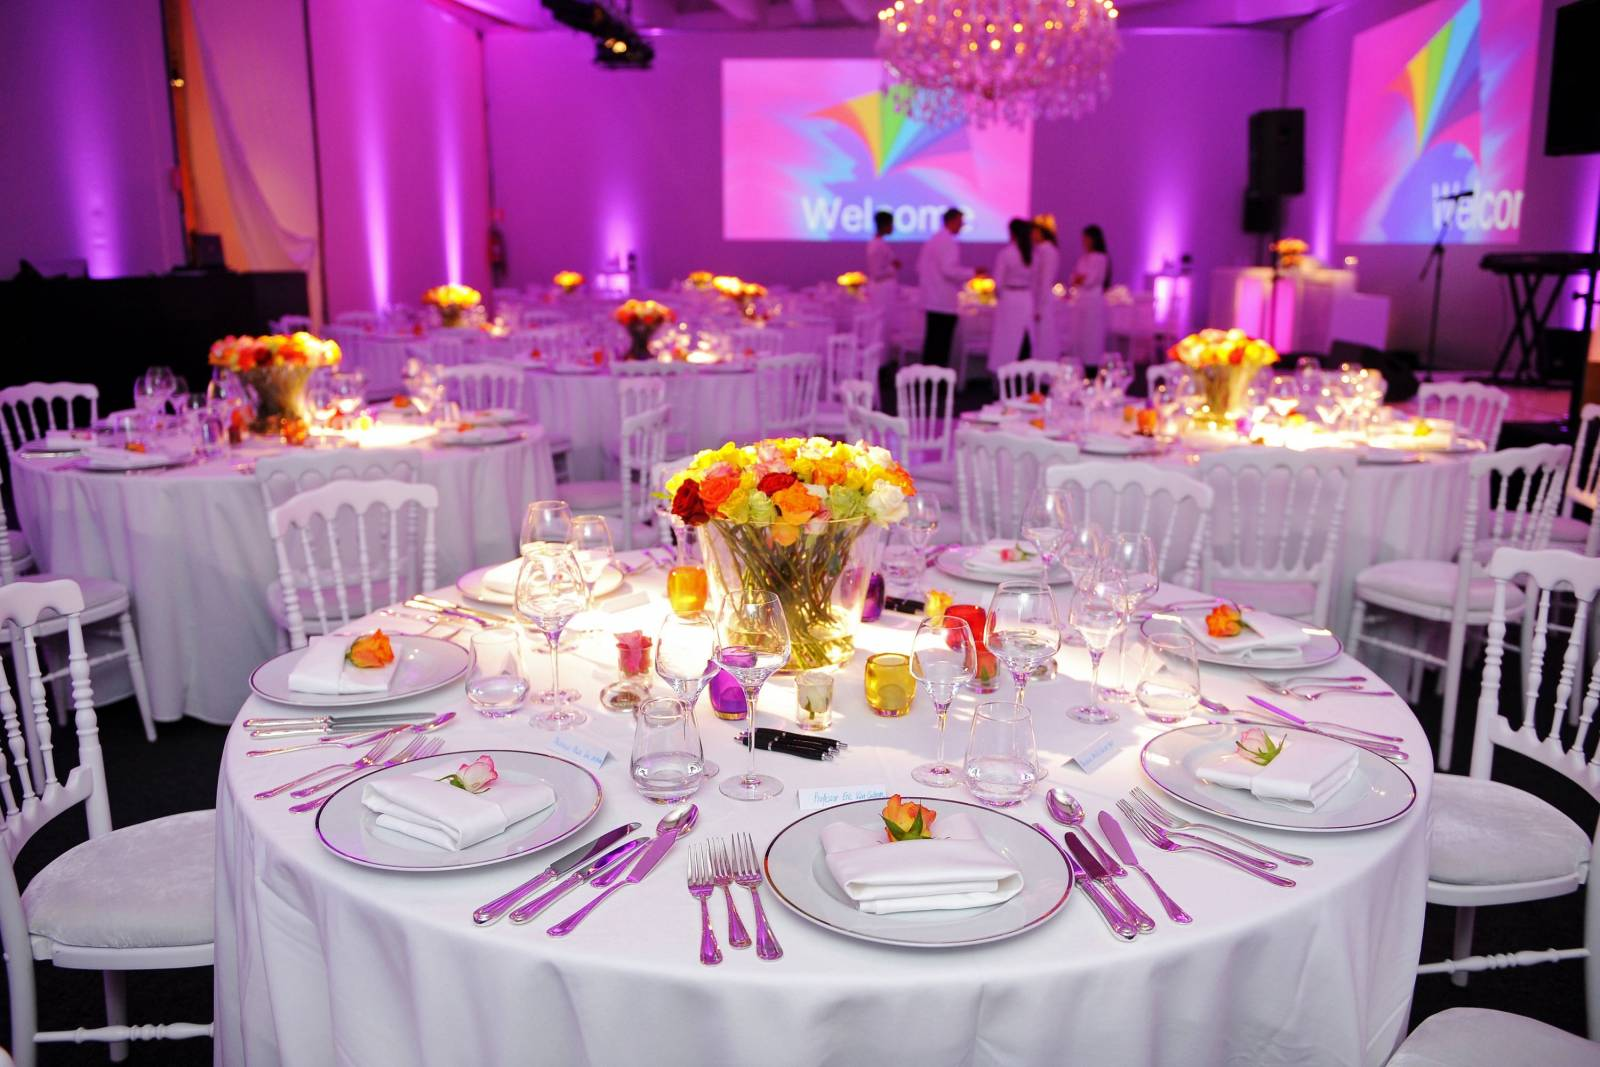 Wild Gallery - Eventlocatie - House of Events - 46